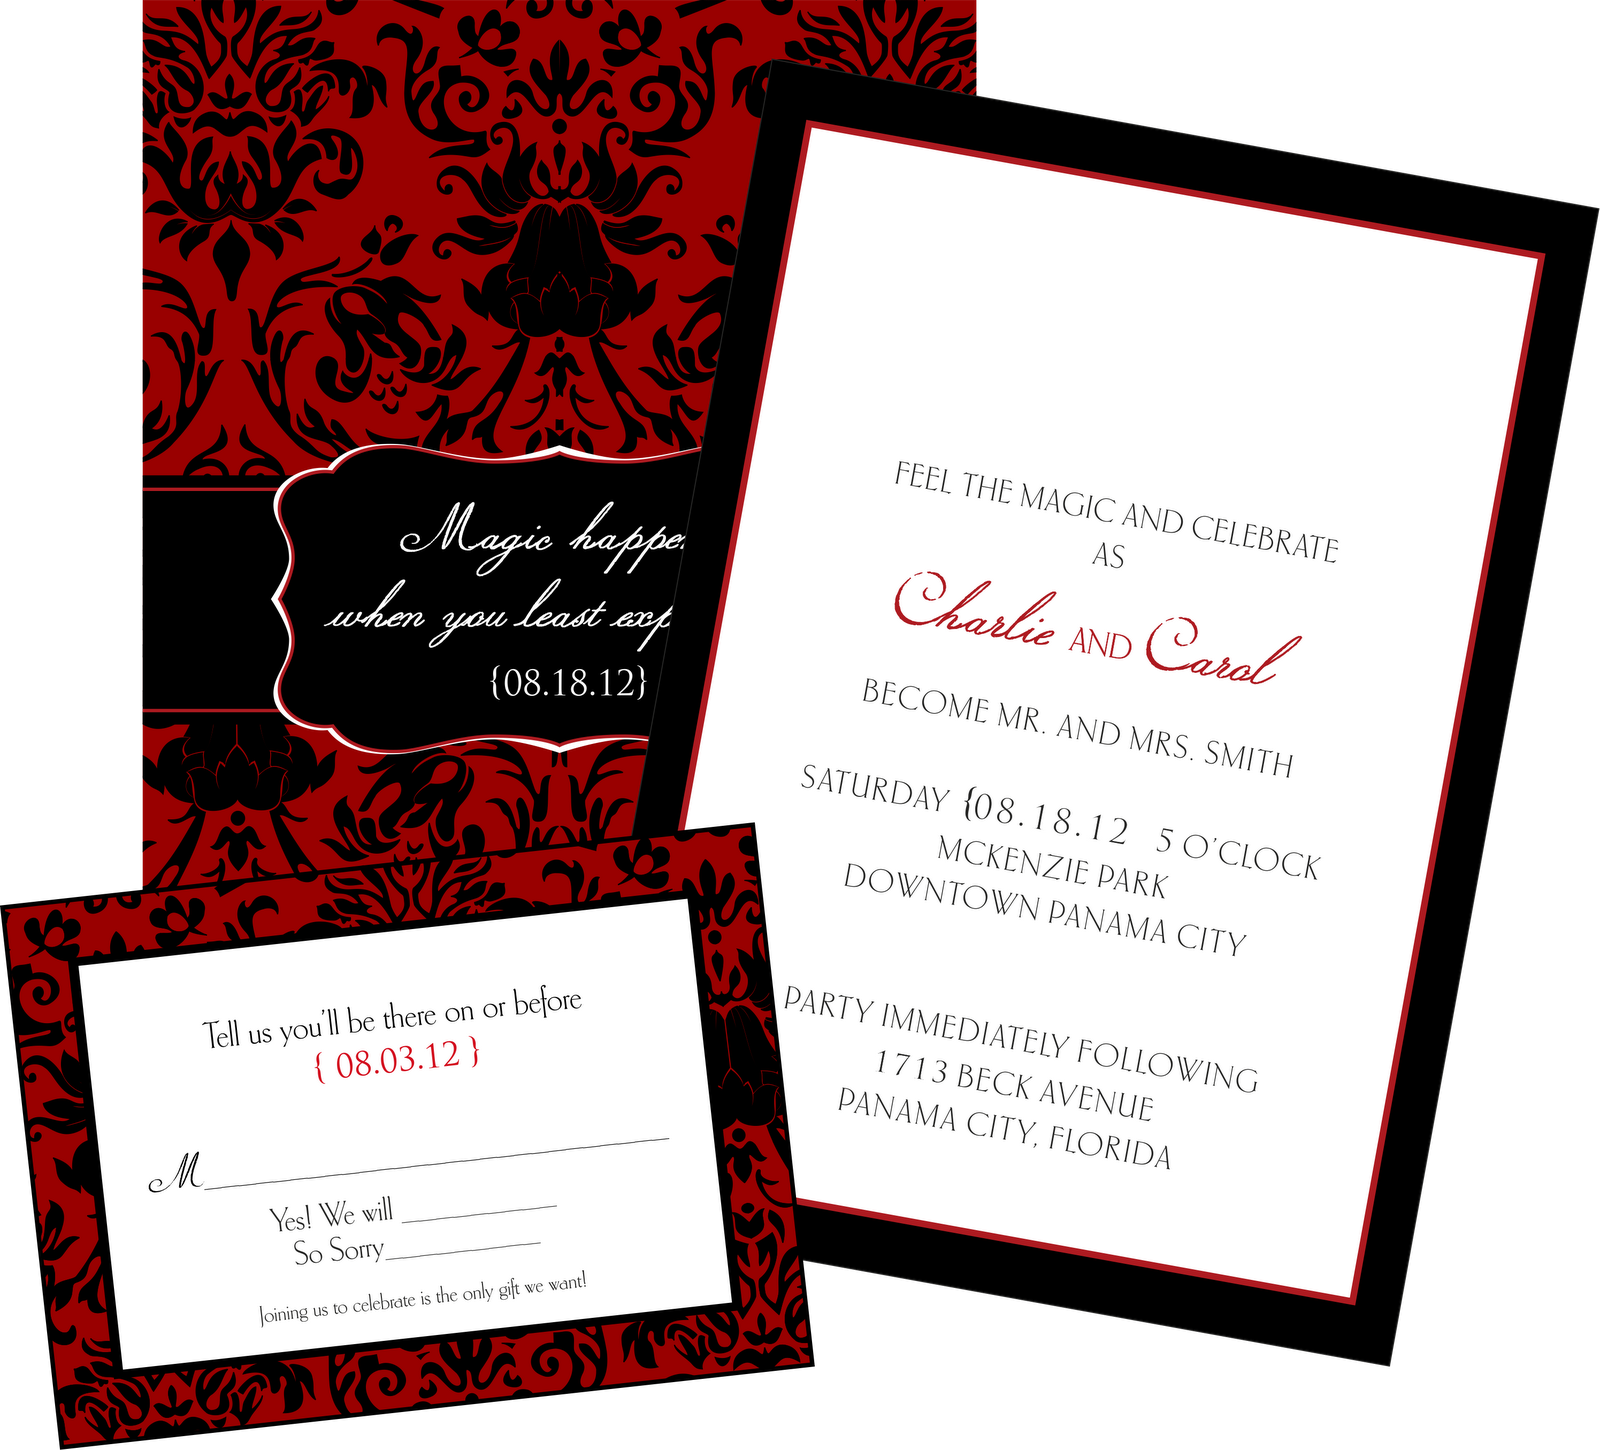 Wedding invitations png. Printing invitation cards printers